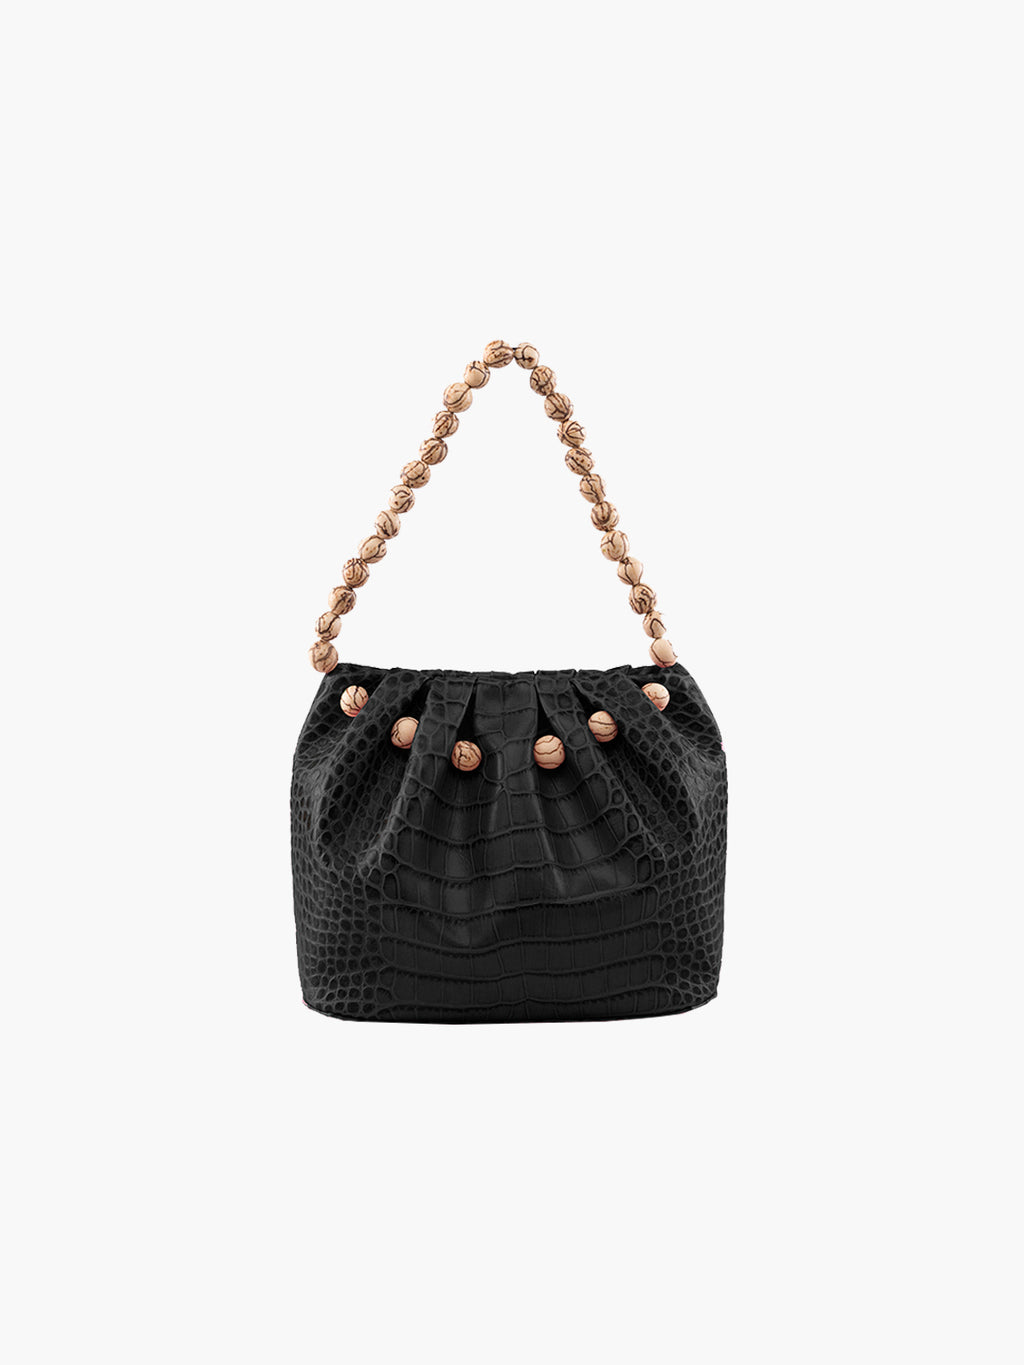 El Islote Bag | Black